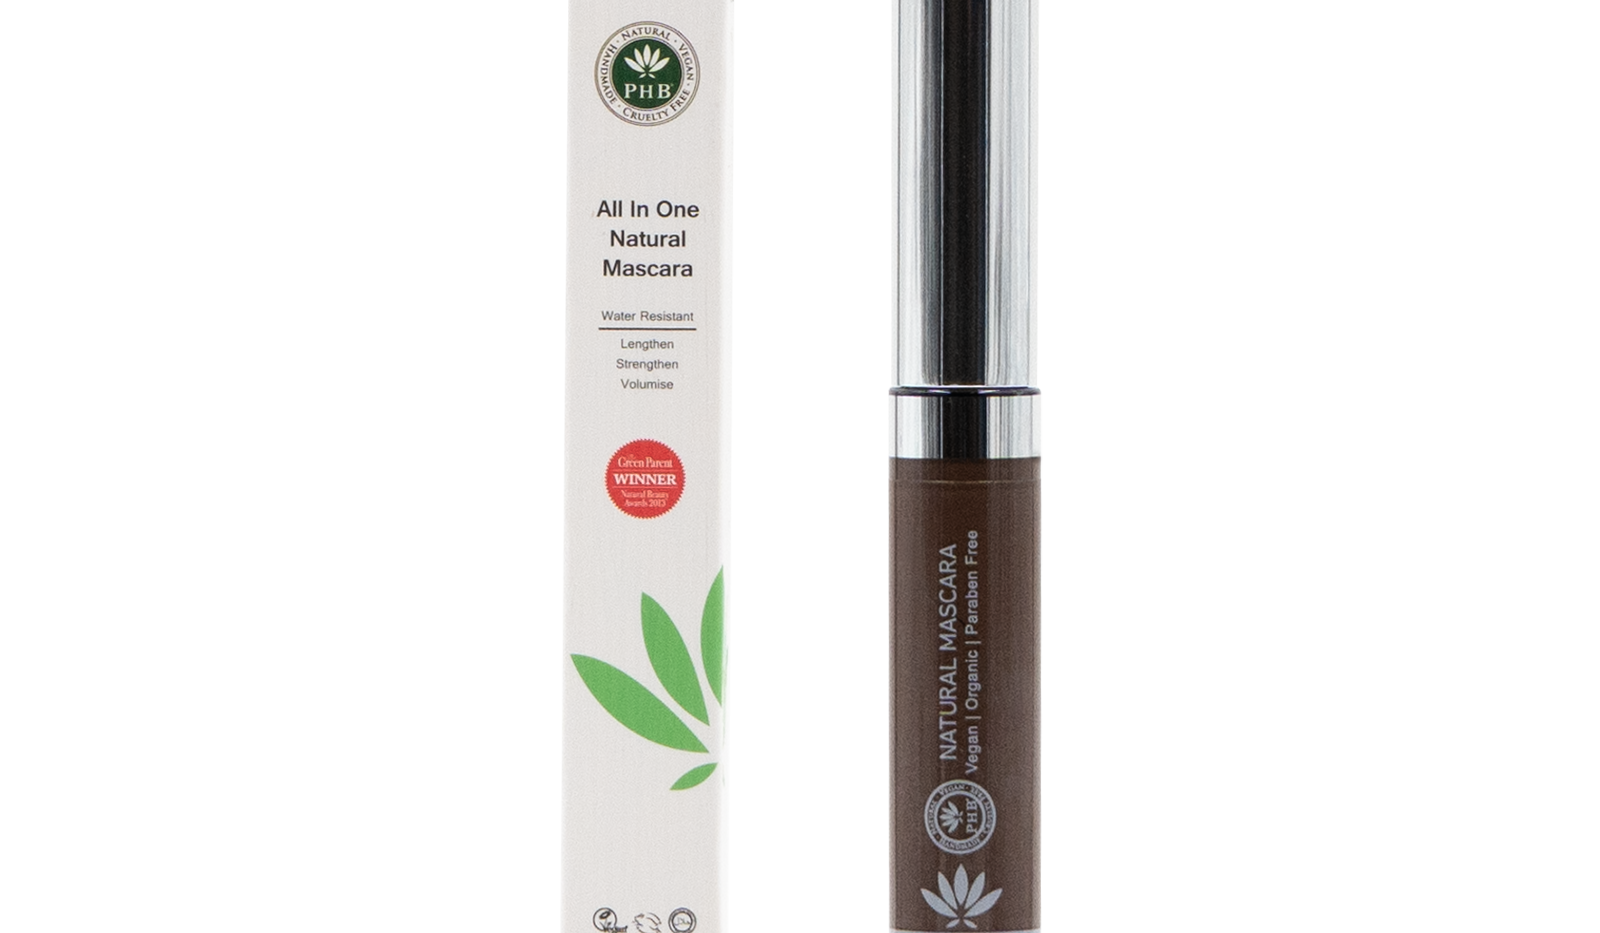 PHB All In One Natural Mascara-Brown.png